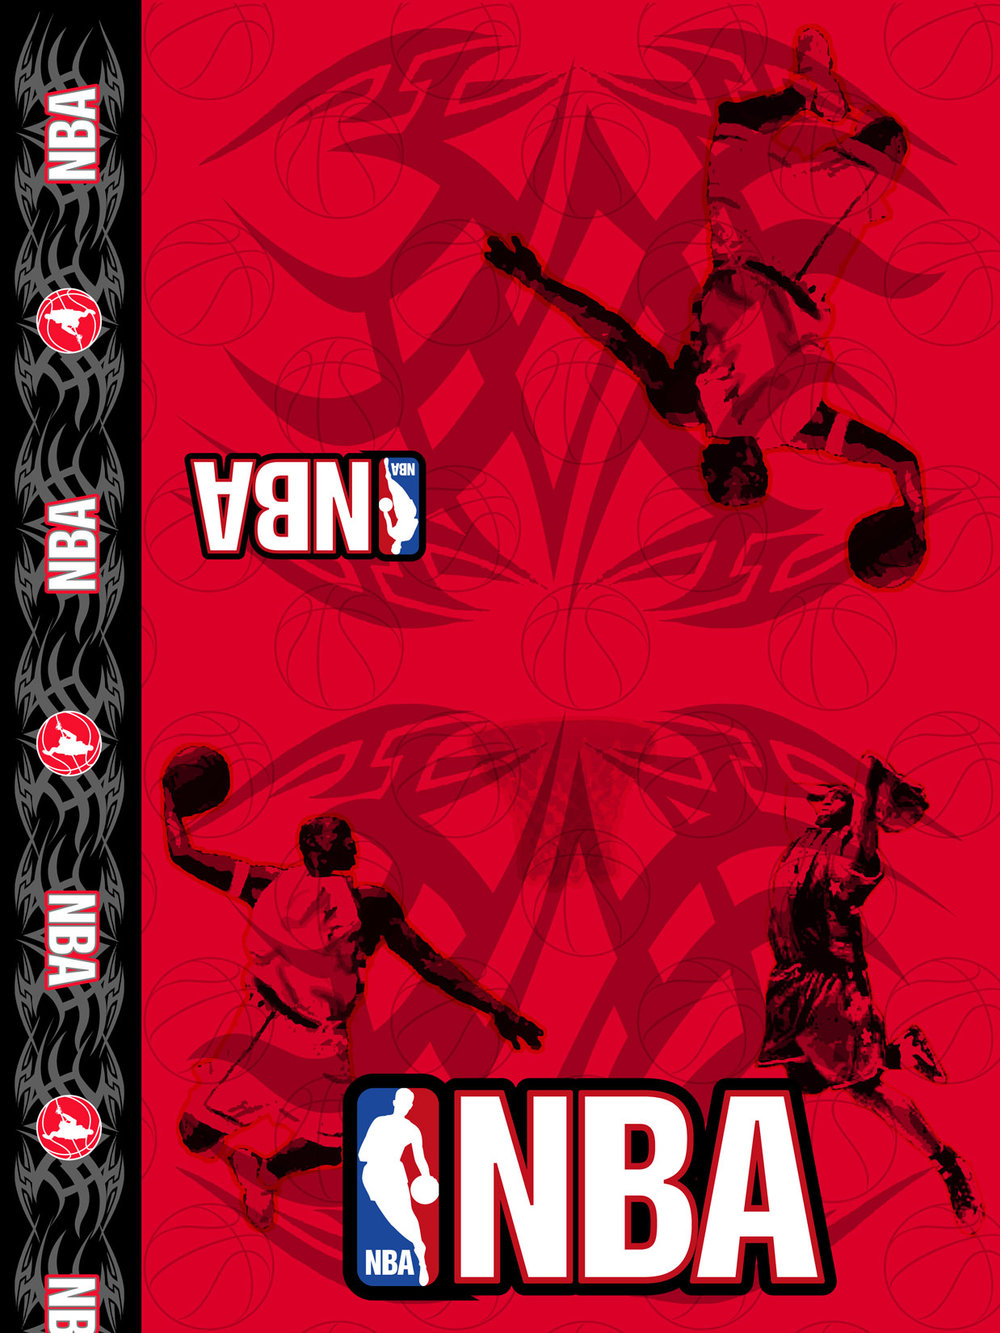 NBA-2-PILLOW.jpg